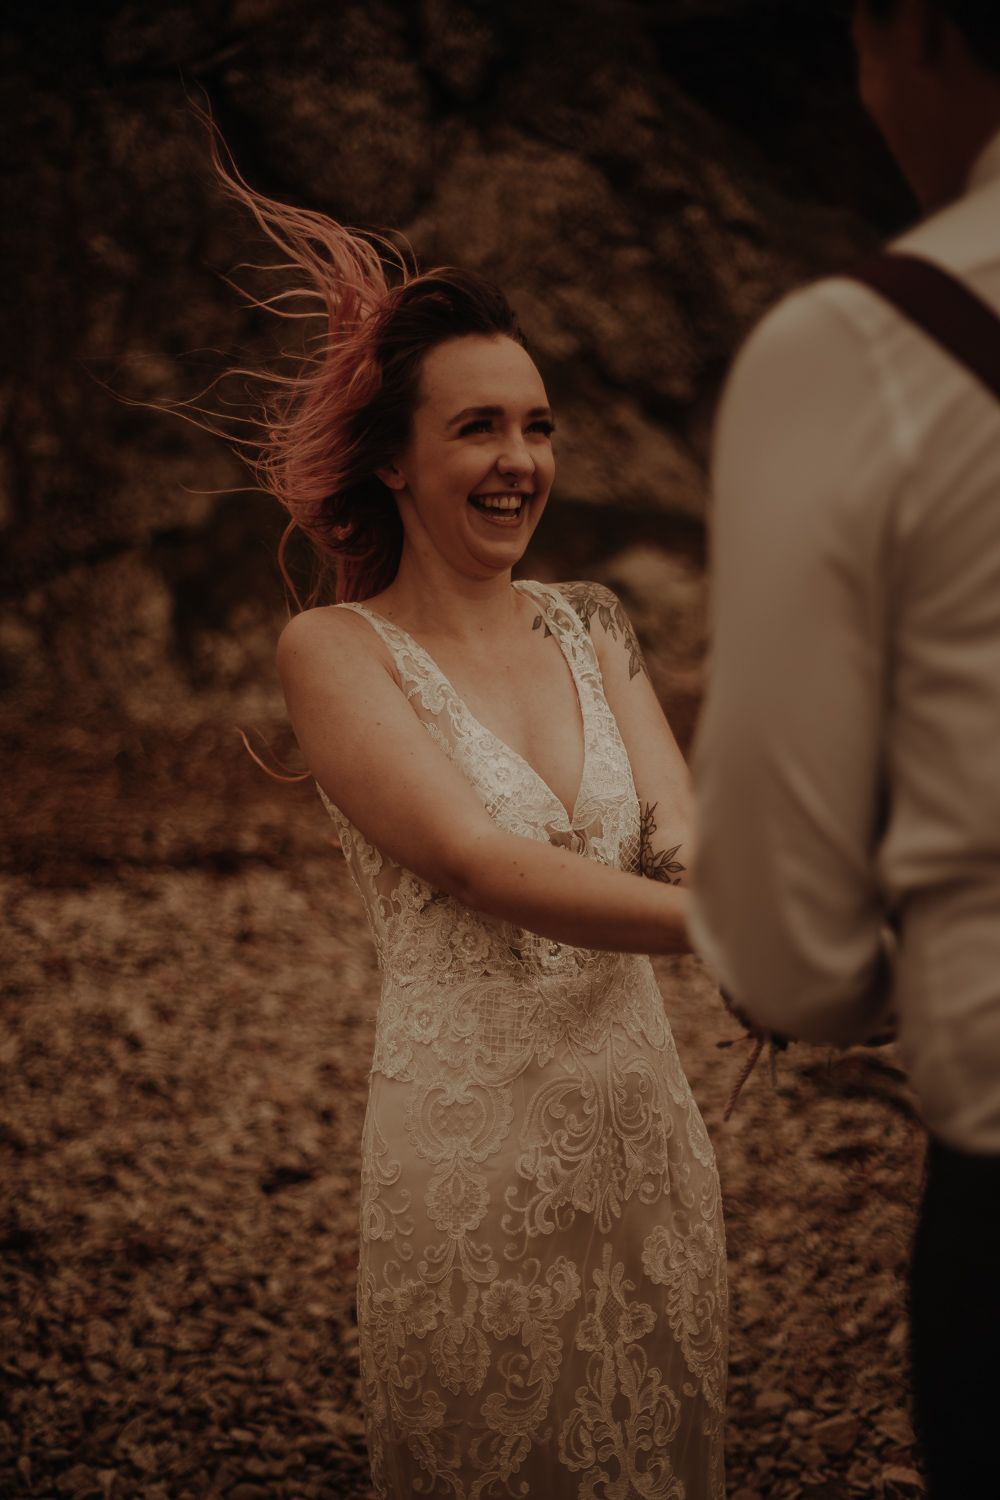 Bride with wind blowing in hair at elopement